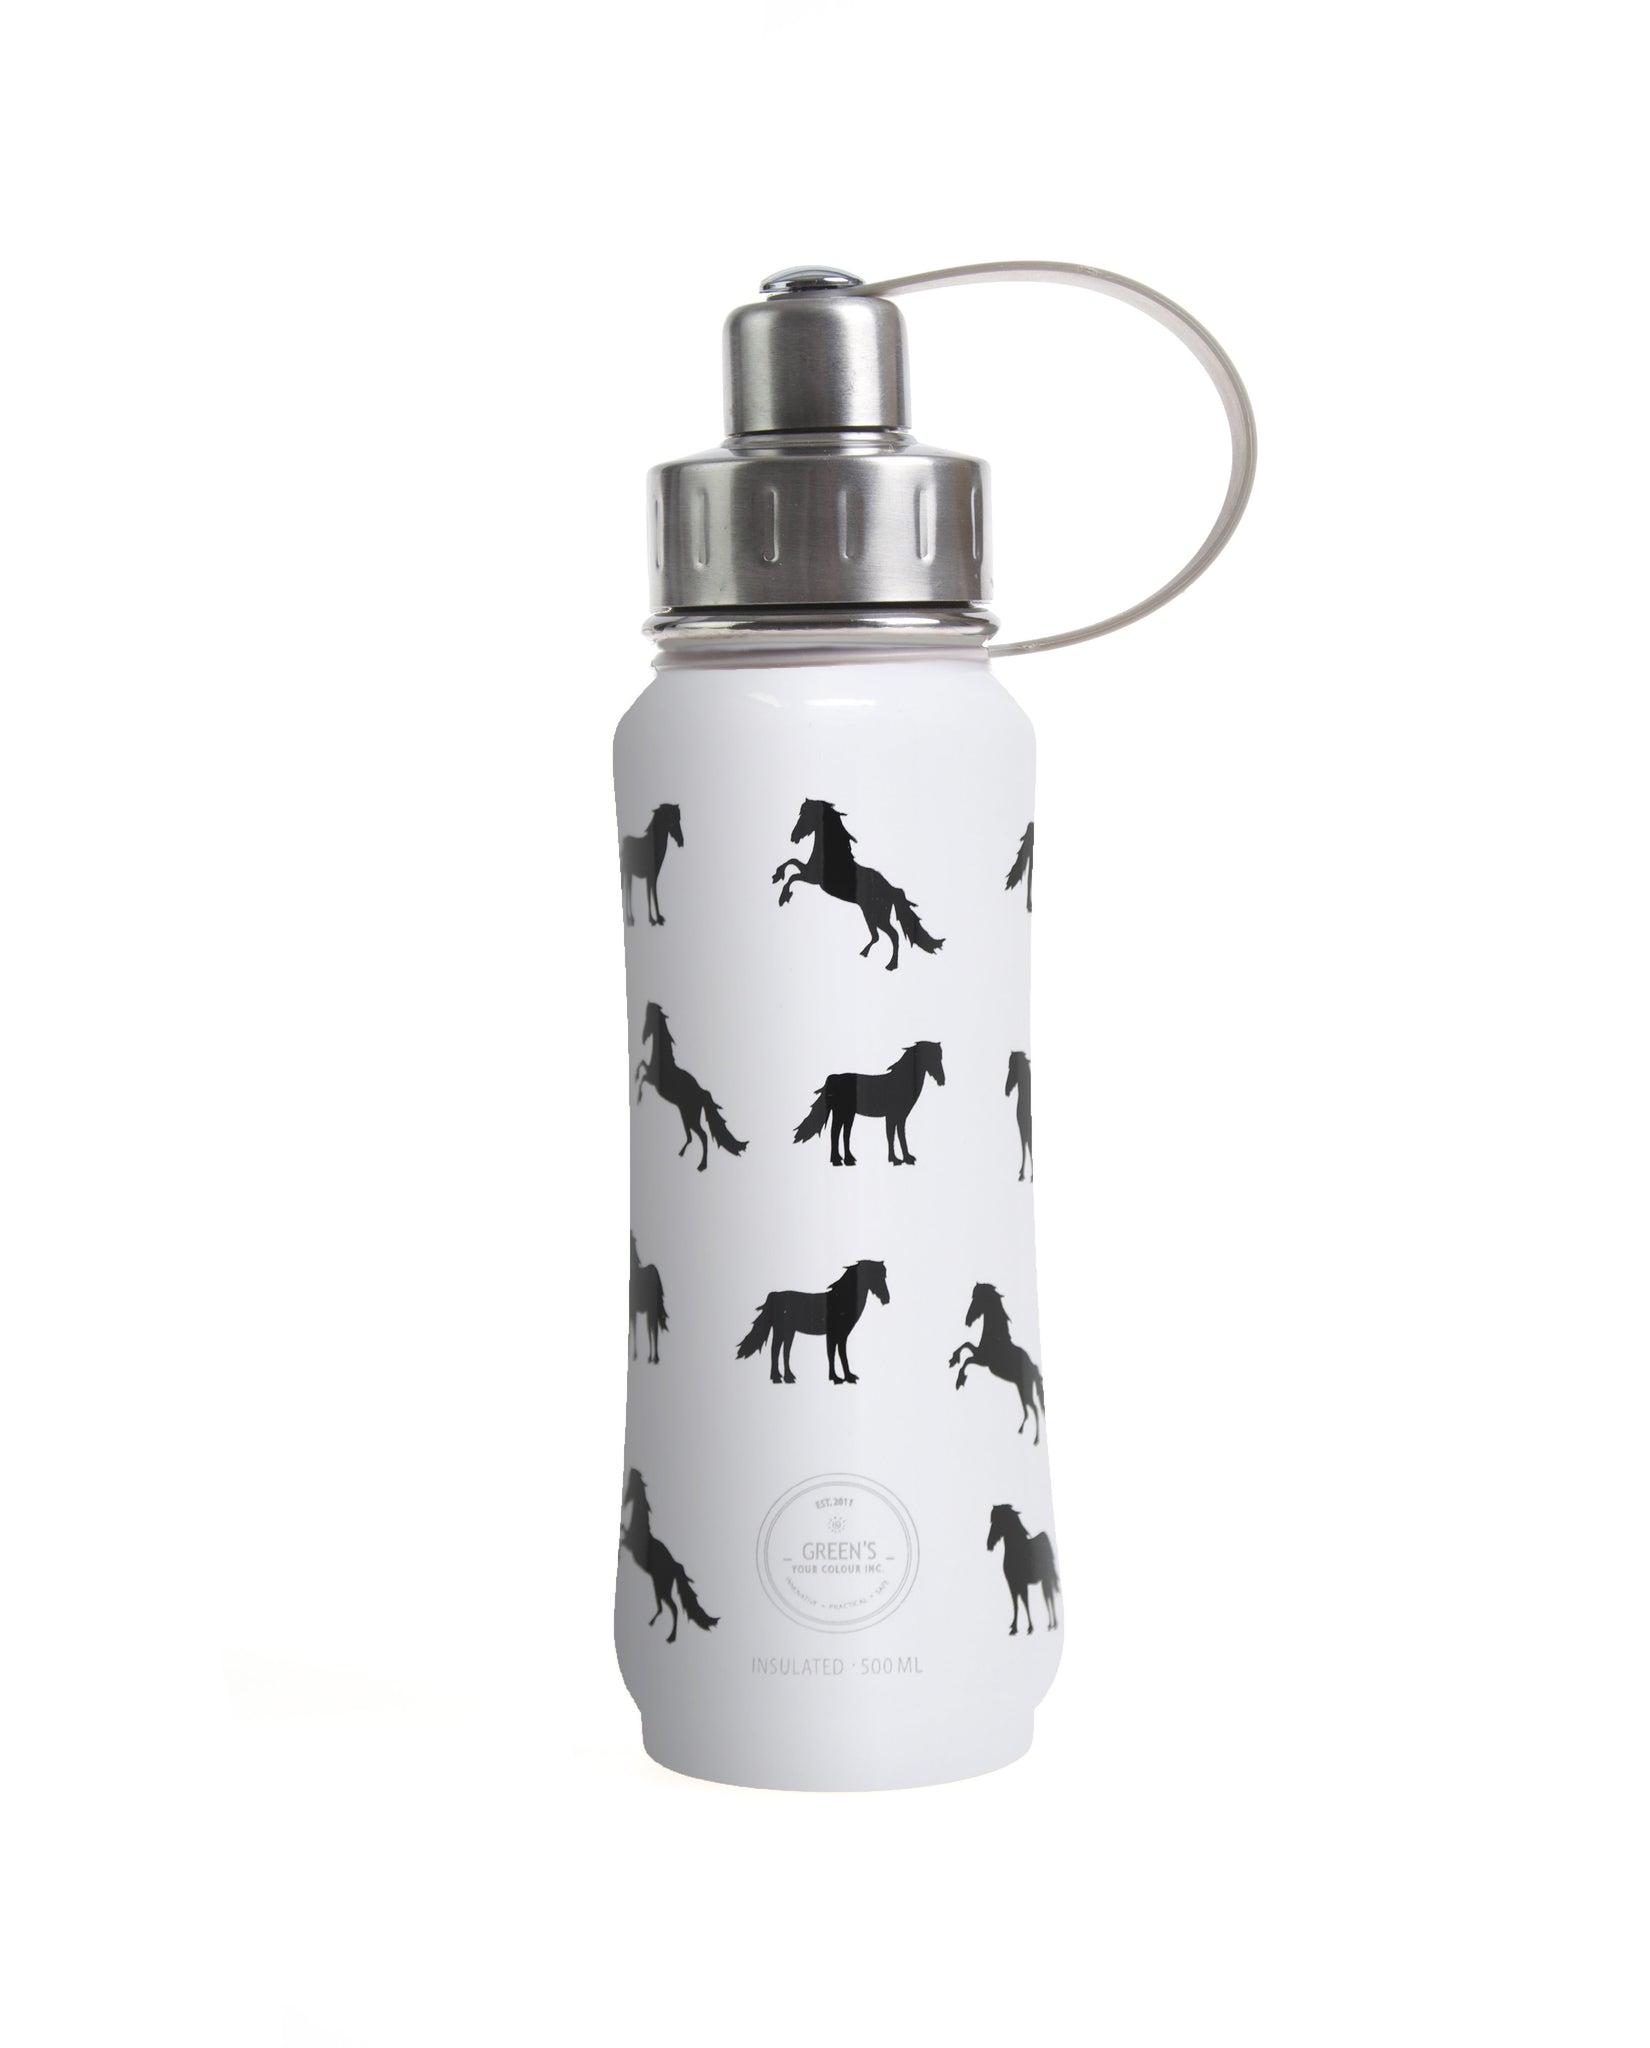 500 ml White Ultimate Horsey insulated vacuum stainless steel leak-proof water bottle carrying handle silver lid